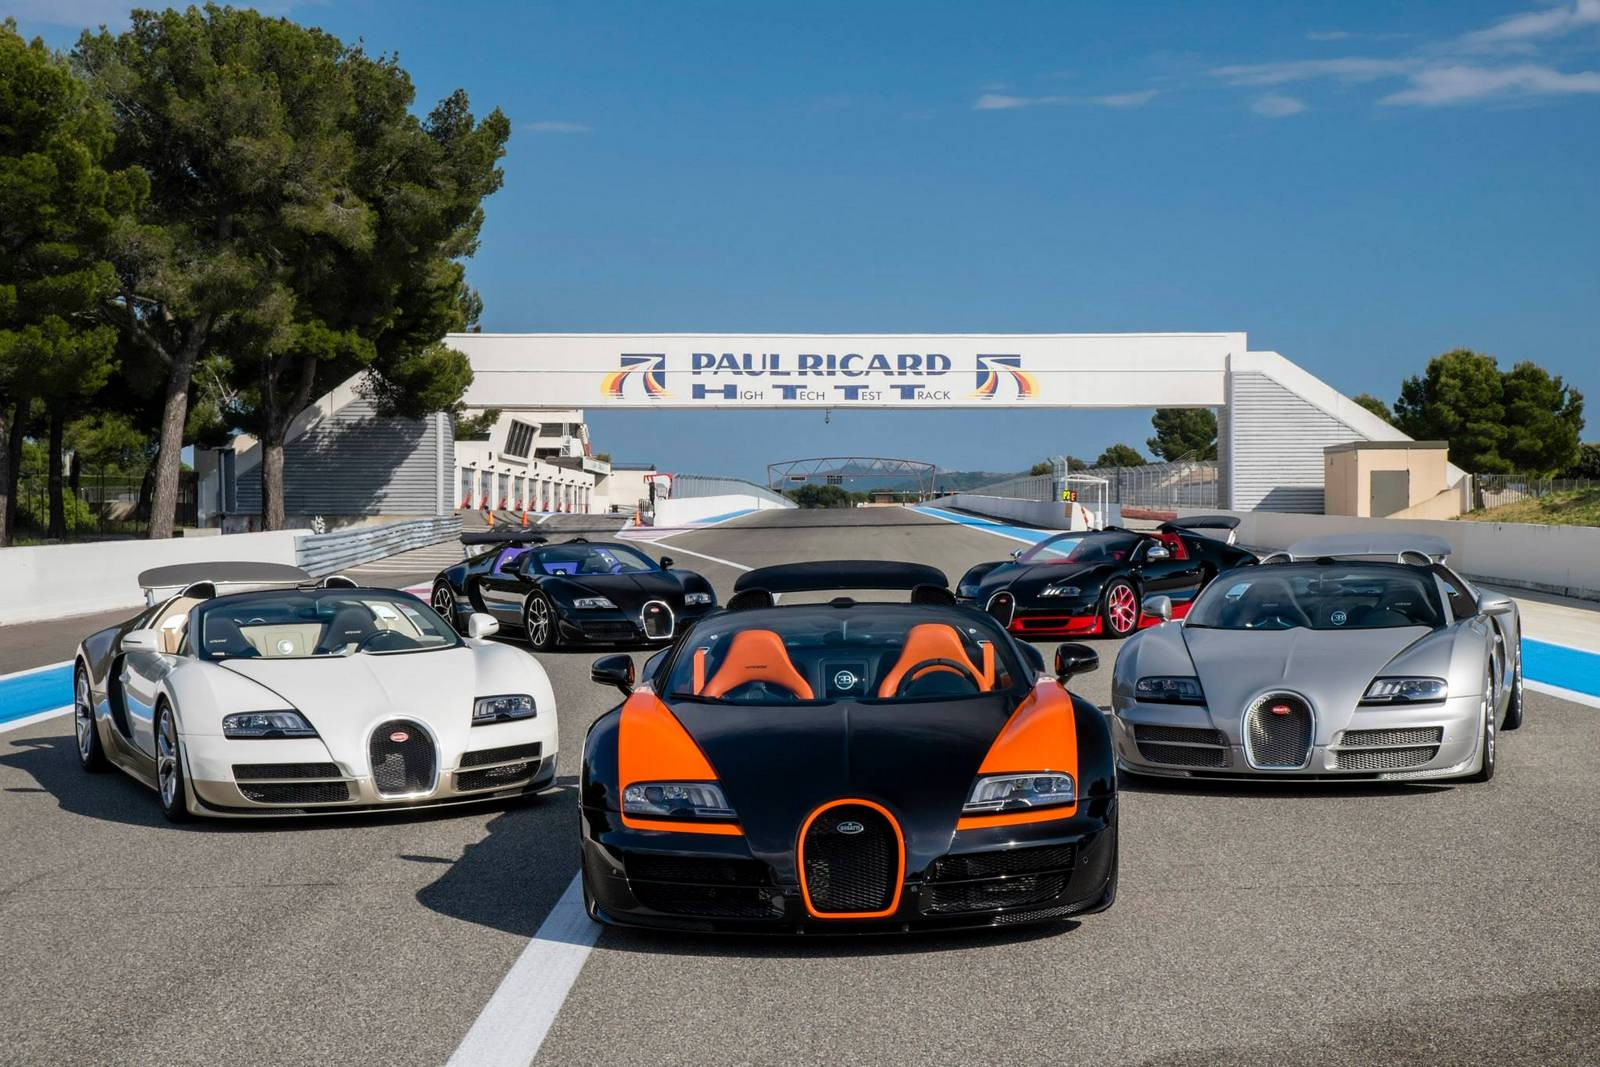 Bugatti bugatti how many made : The Bugatti Veyron Is Sold Out - Our Best of 450 Veyrons - GTspirit